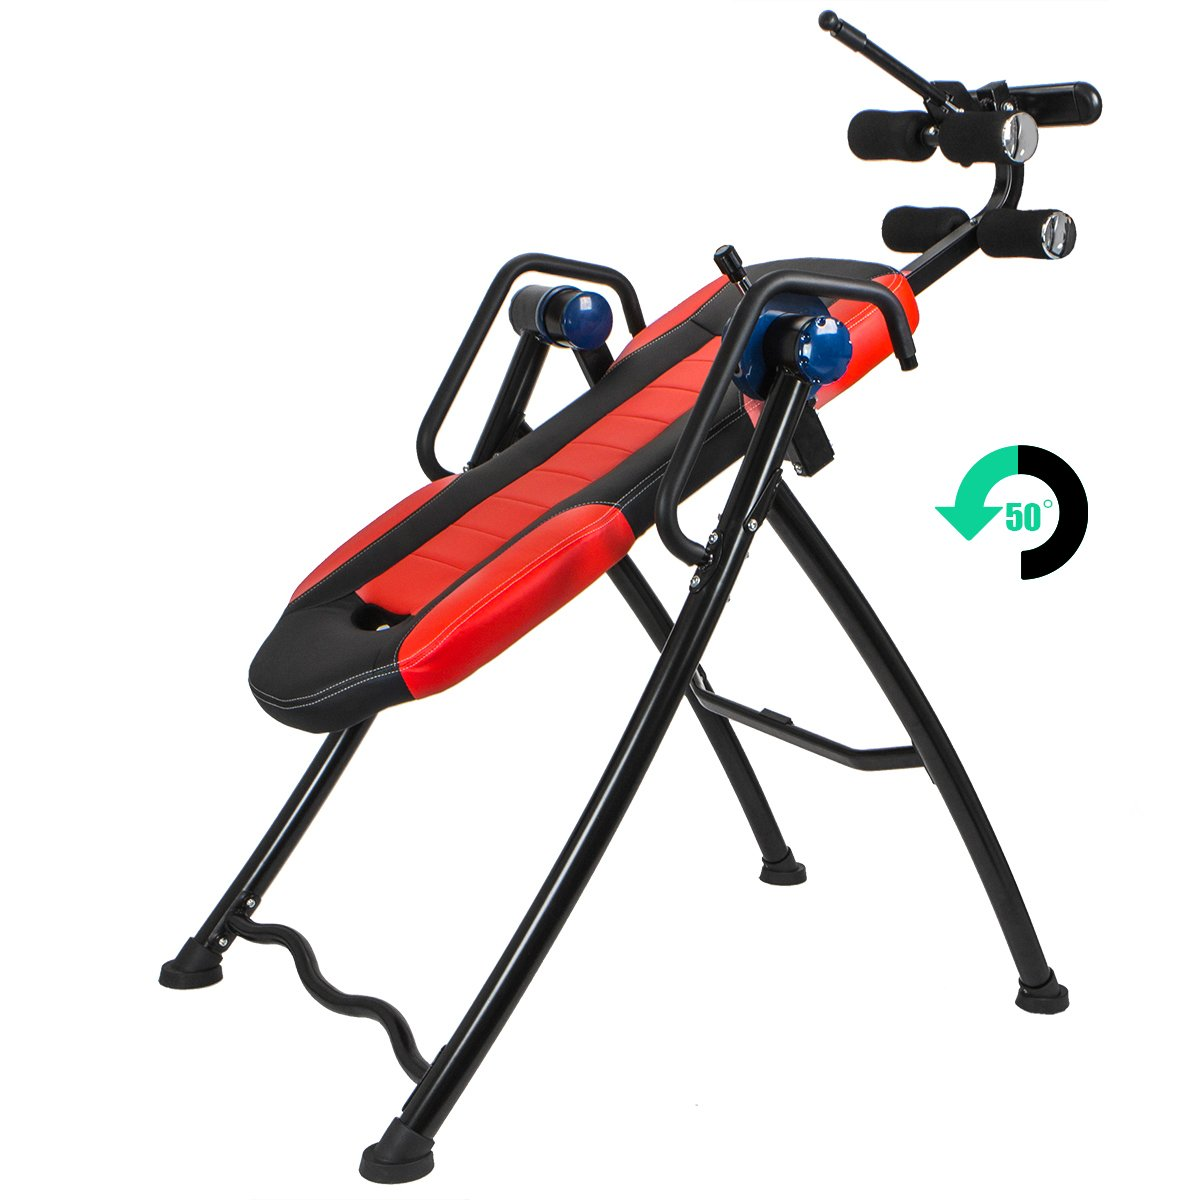 XtremepowerUS Gravity Inversion Therapy Table Fitness Back Pain Relief w/ Padded Backrest by XtremepowerUS (Image #3)